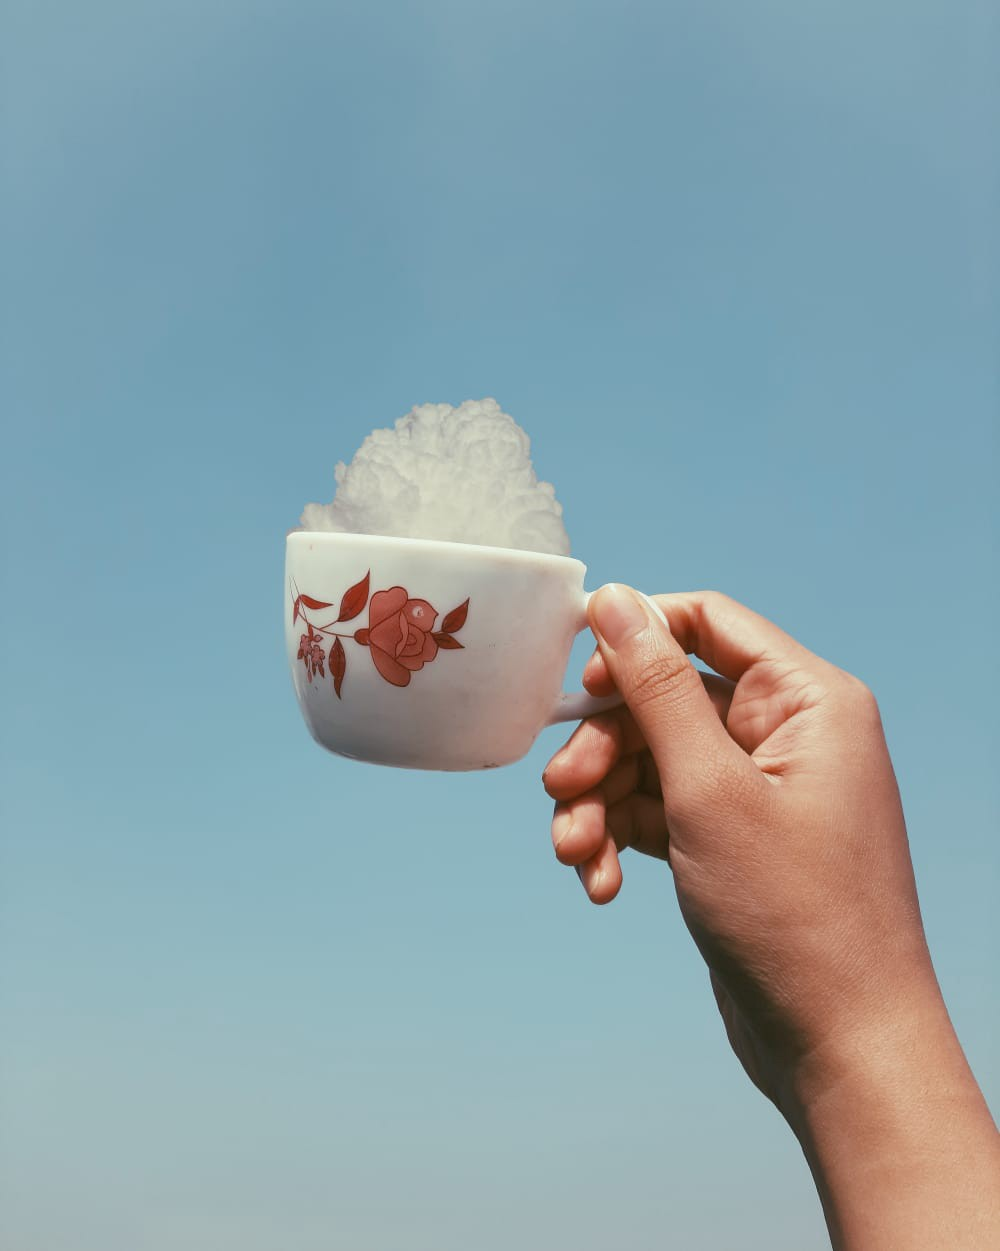 A hand holding a cup full of clouds